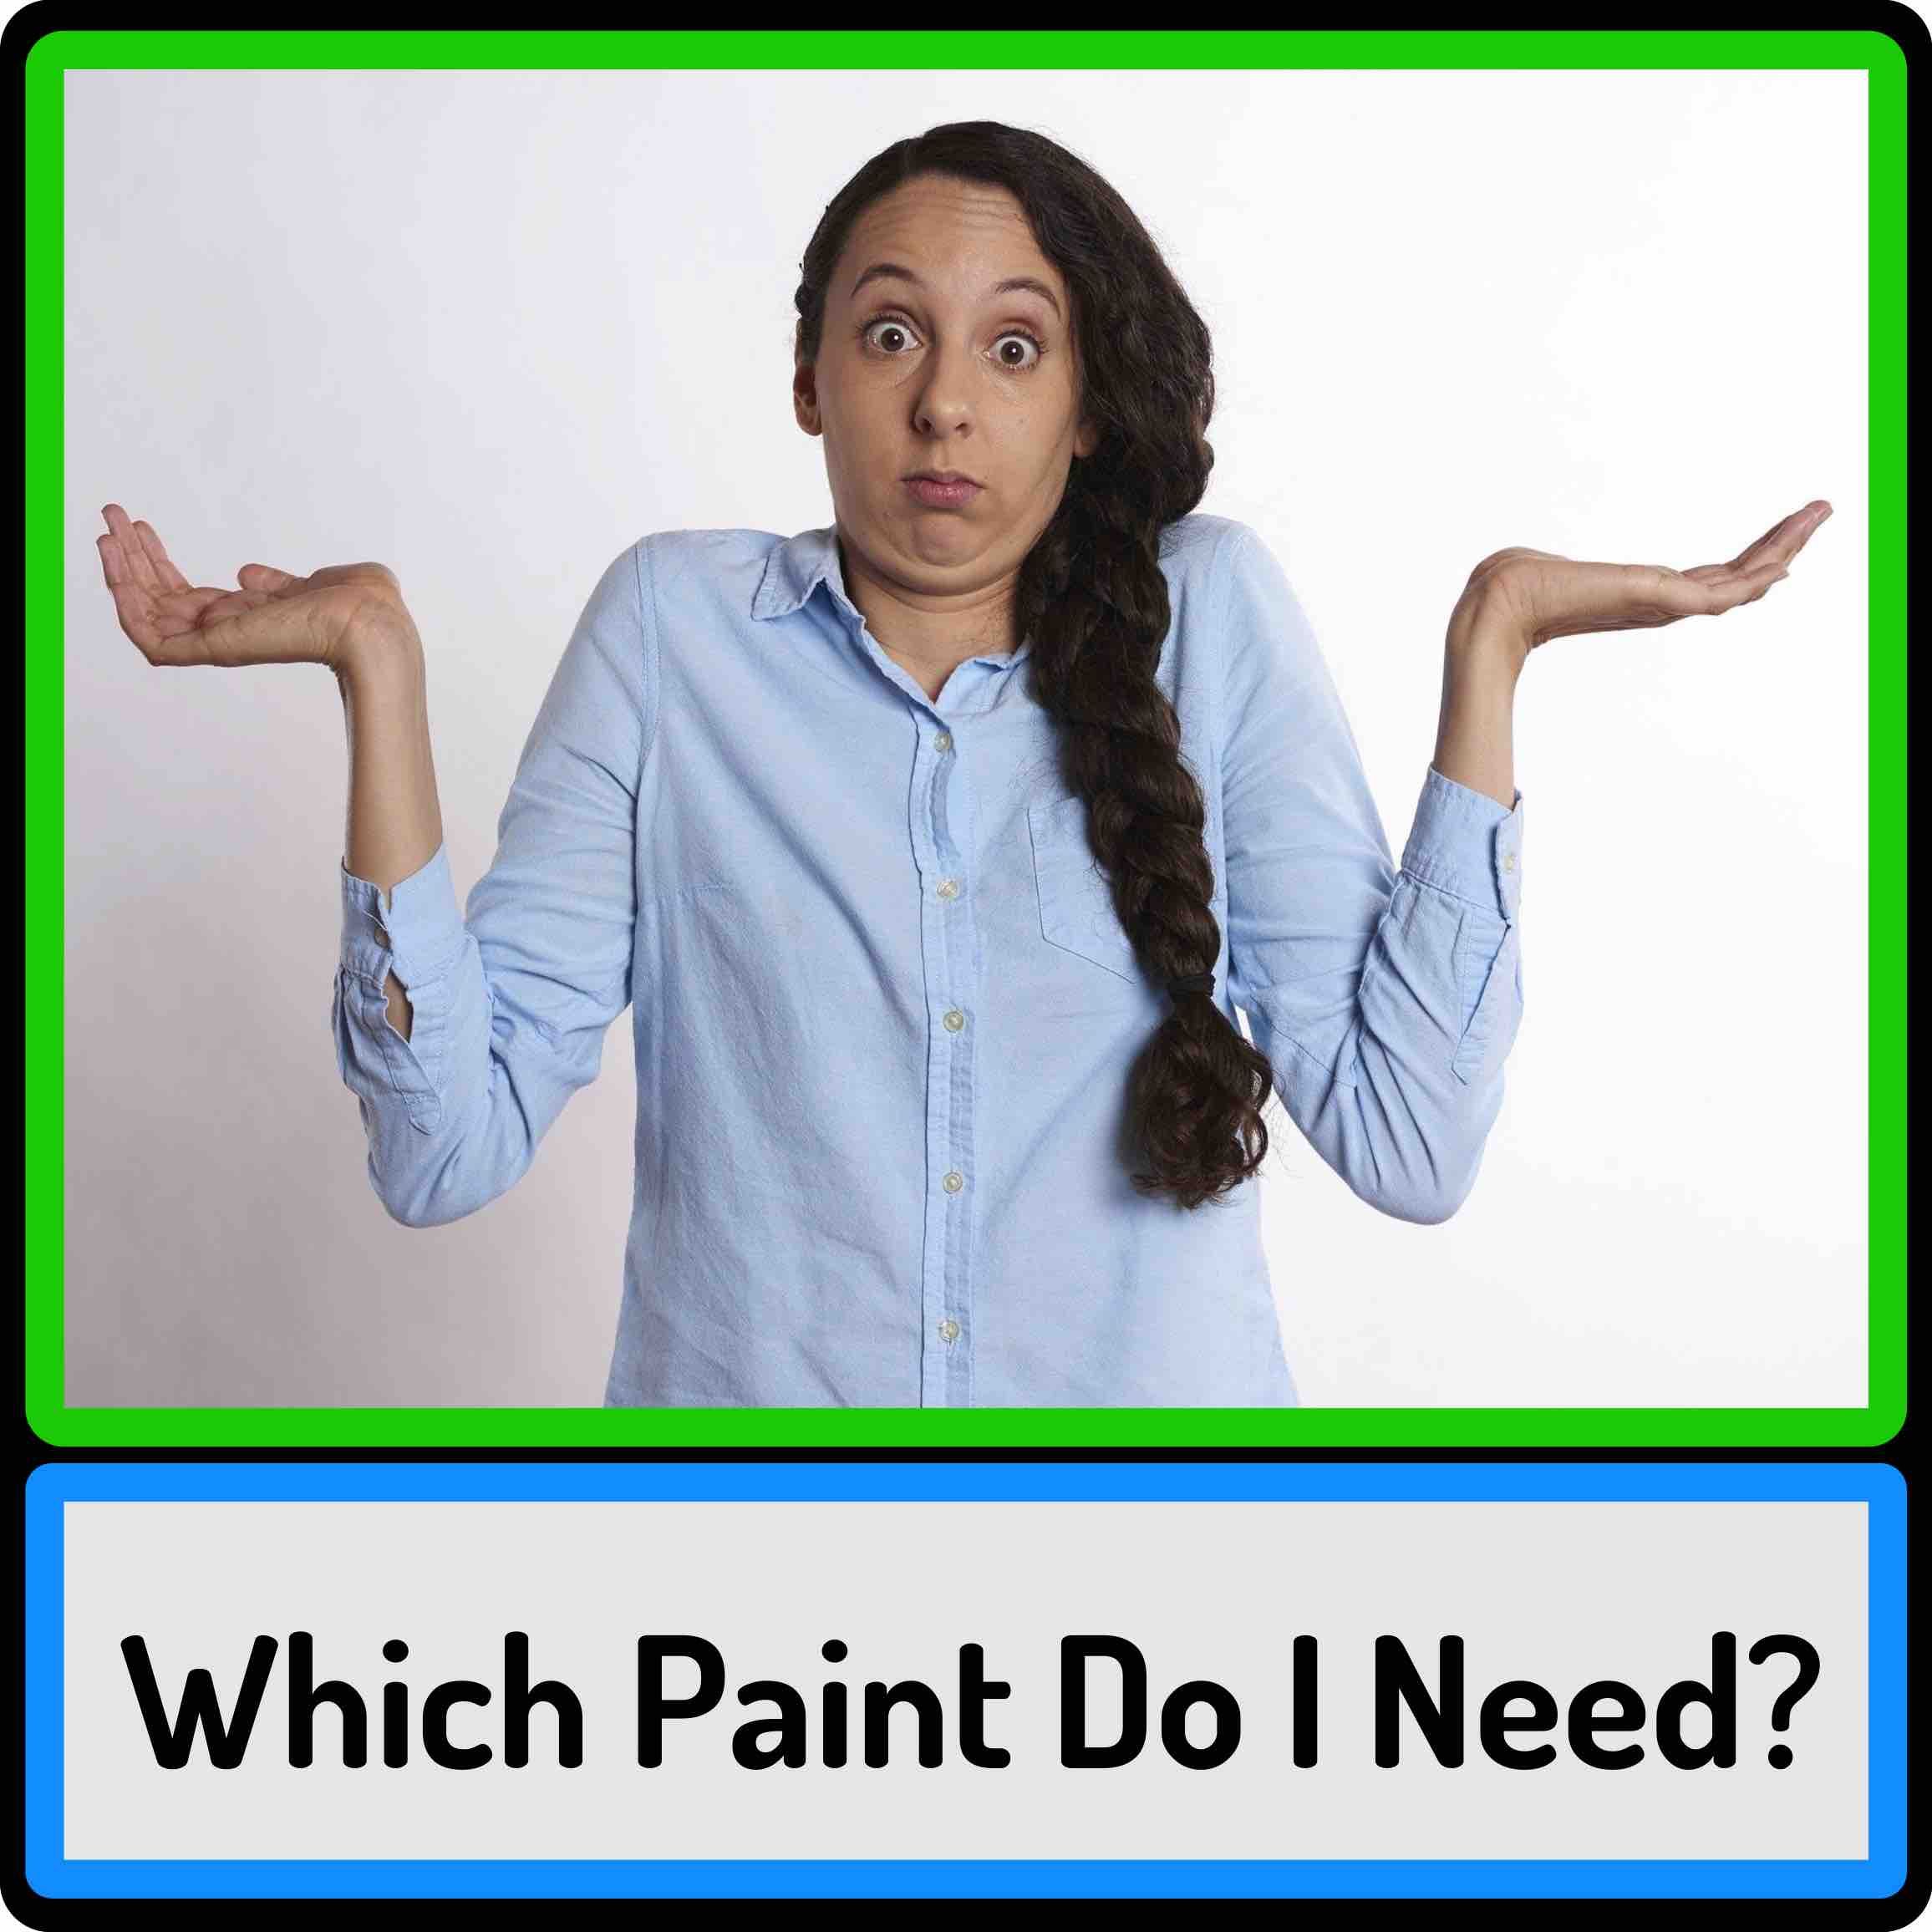 Image Link to a page helping you choose the correct paint for your needs.